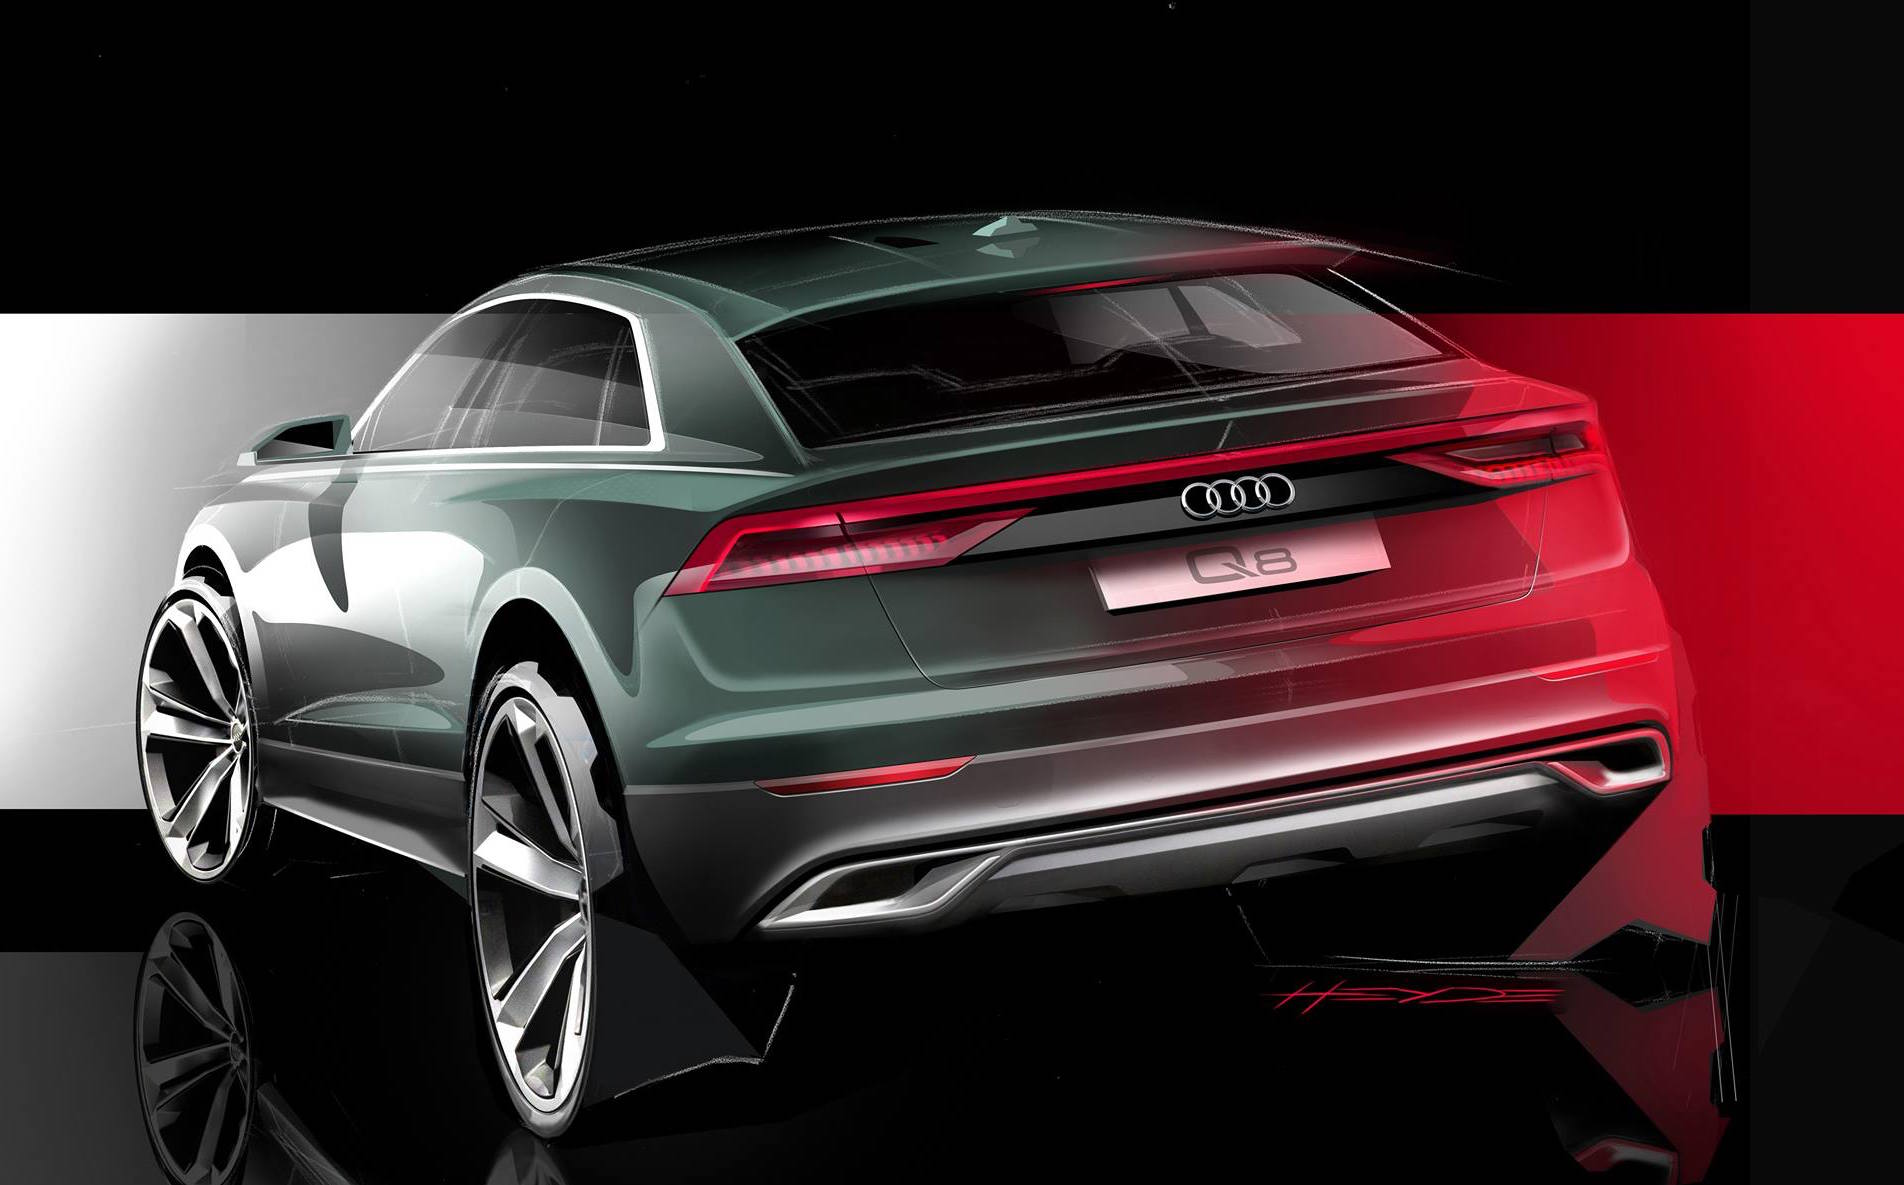 Audi Q8 Preview Shows Sporty Rear End To Debut In June